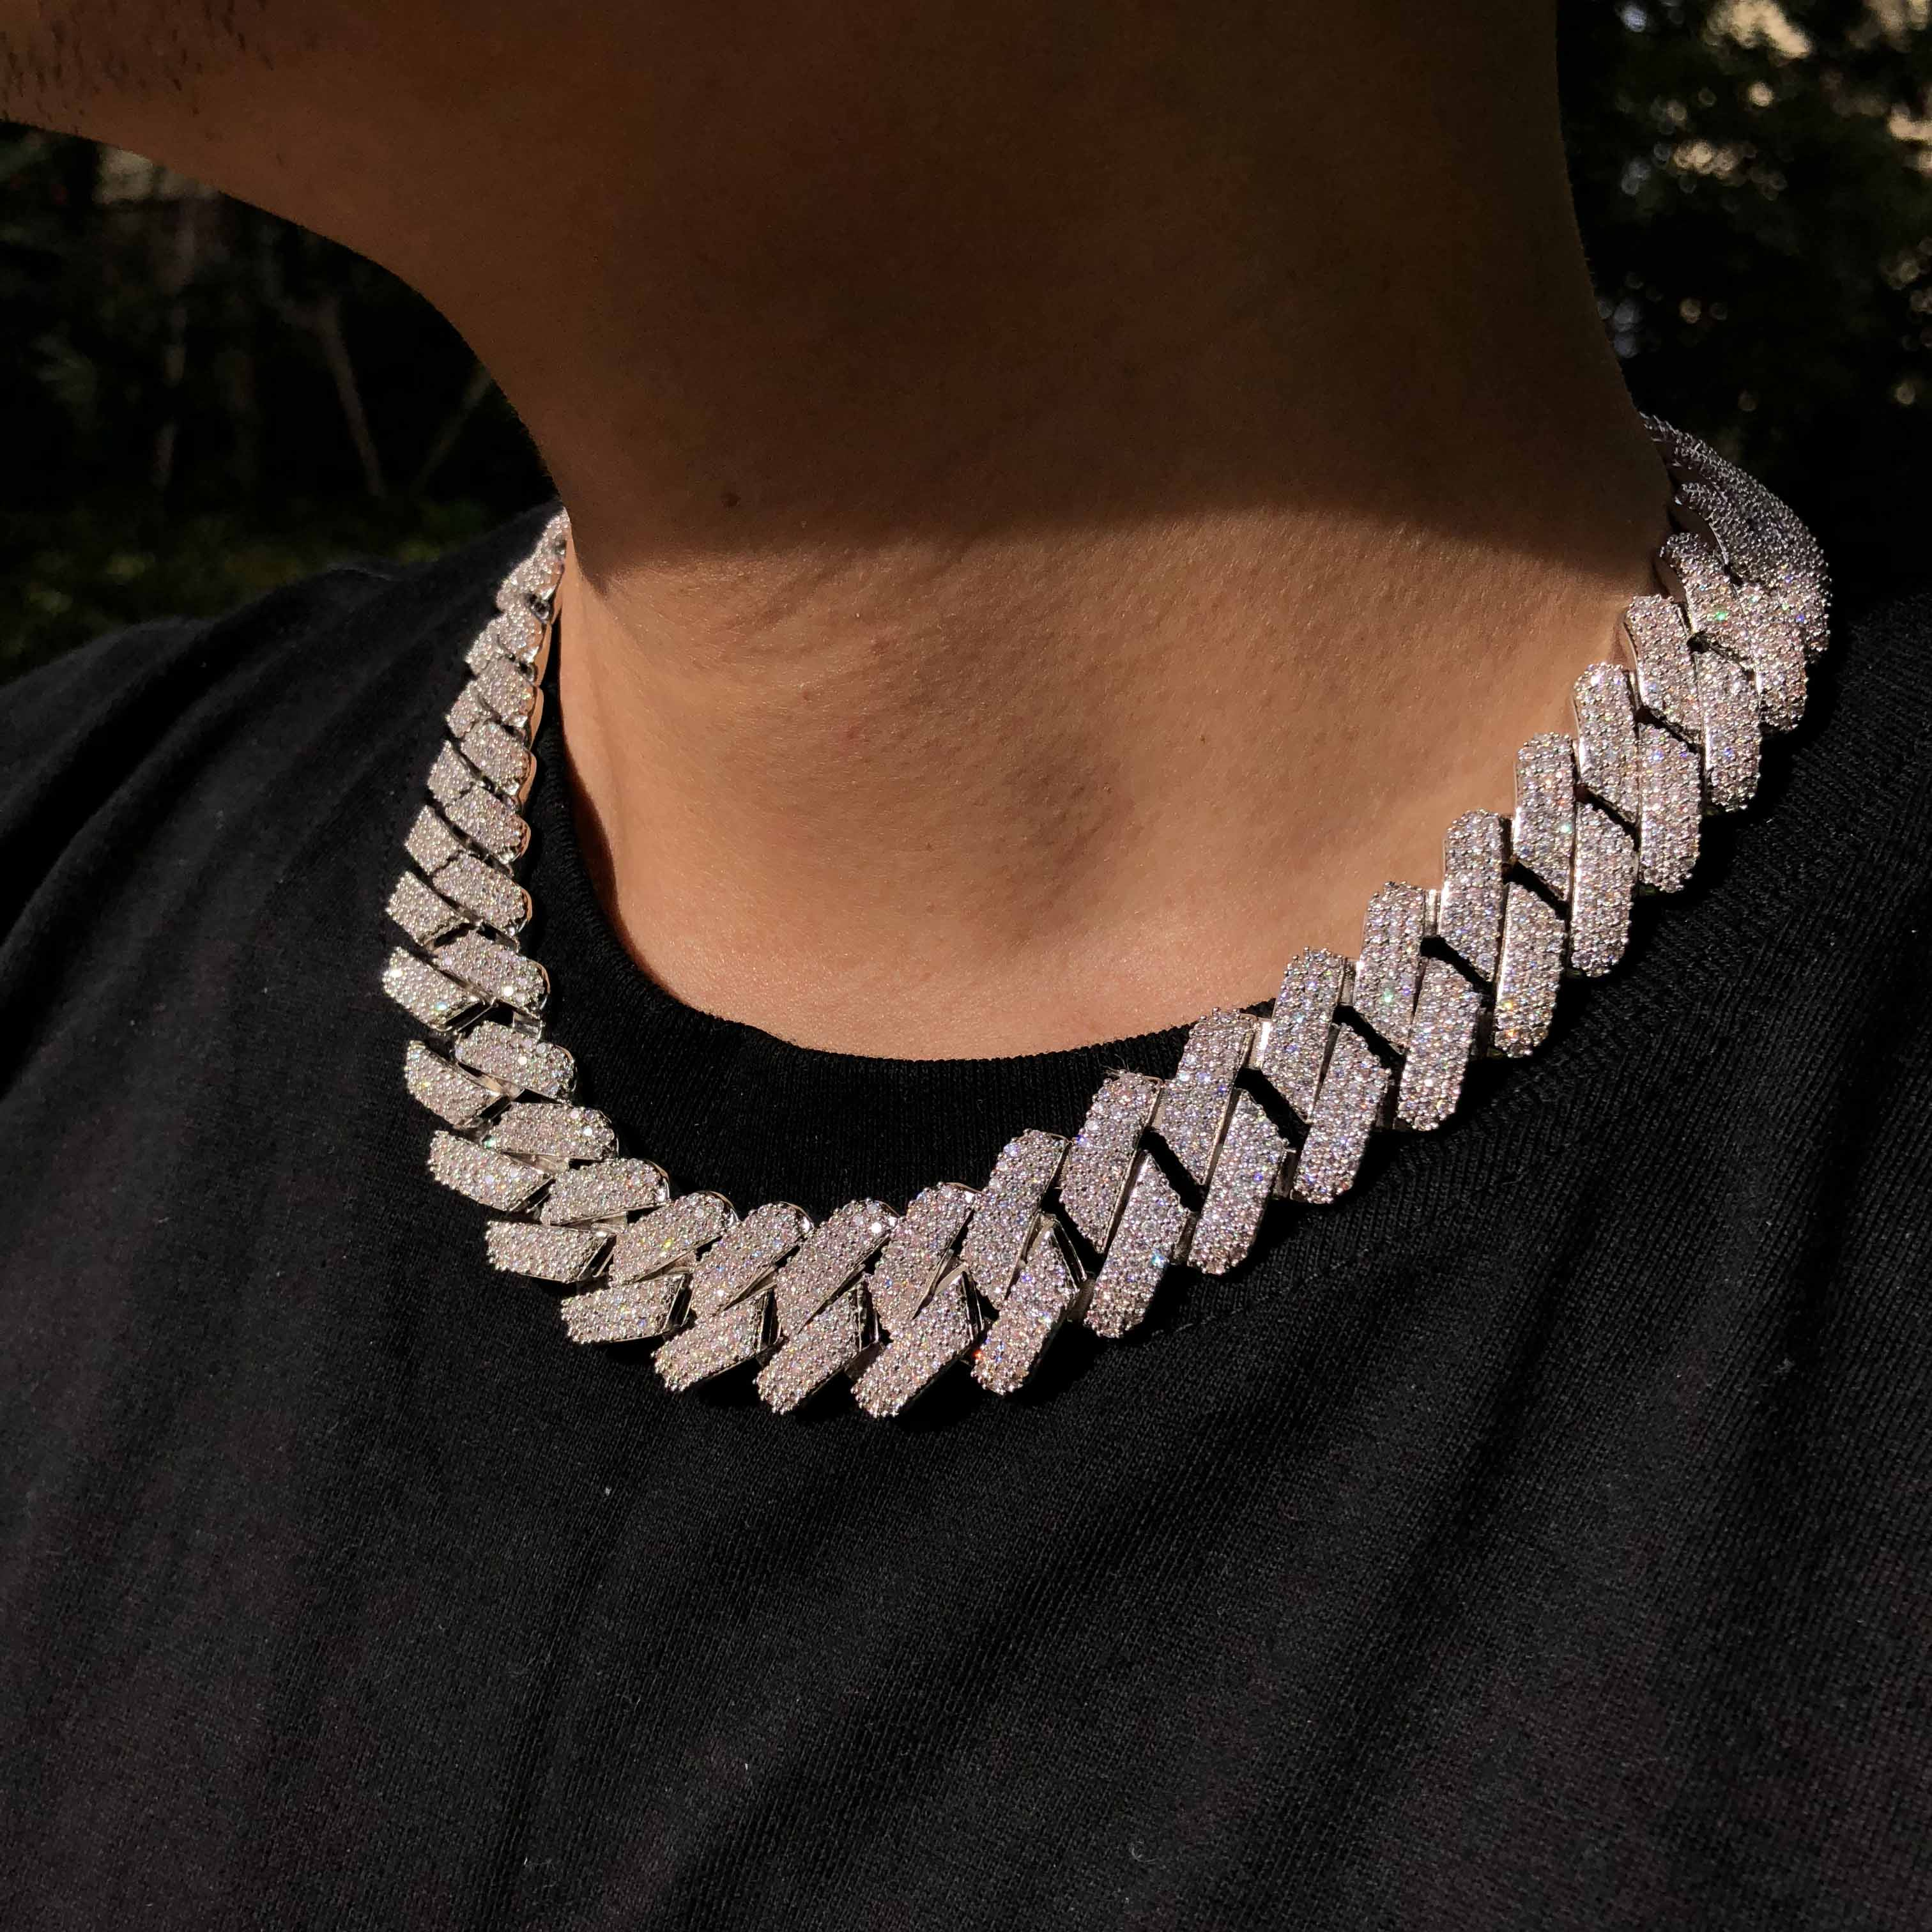 Iced out bling bling cuban link chain wholesale hiphop jewelry